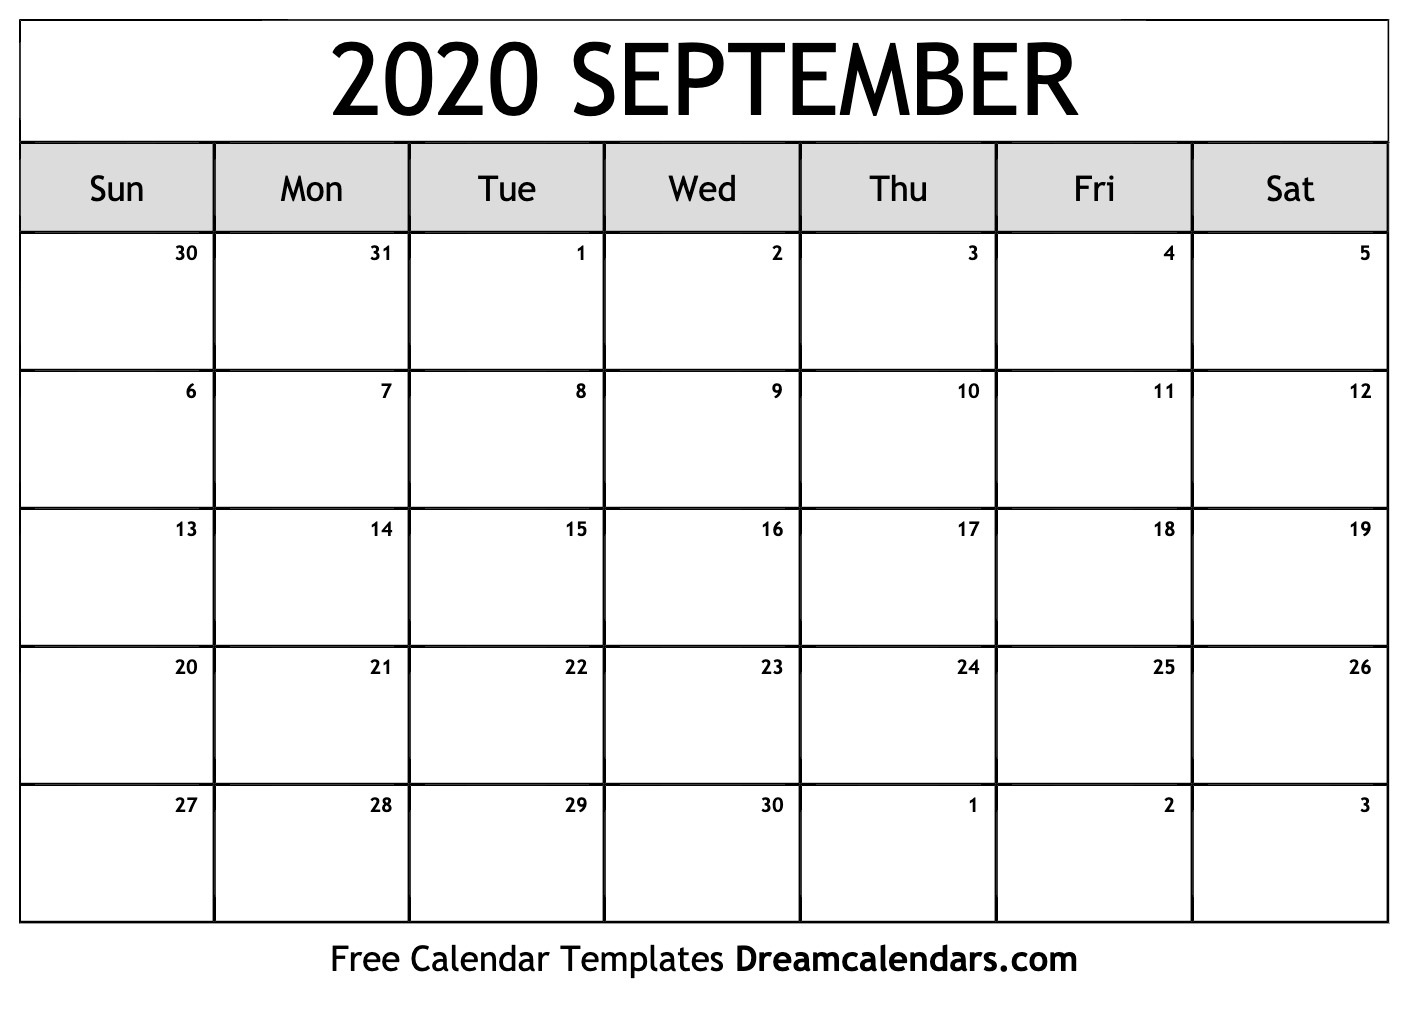 Free September 2020 Printable Calendar | Dream Calendars